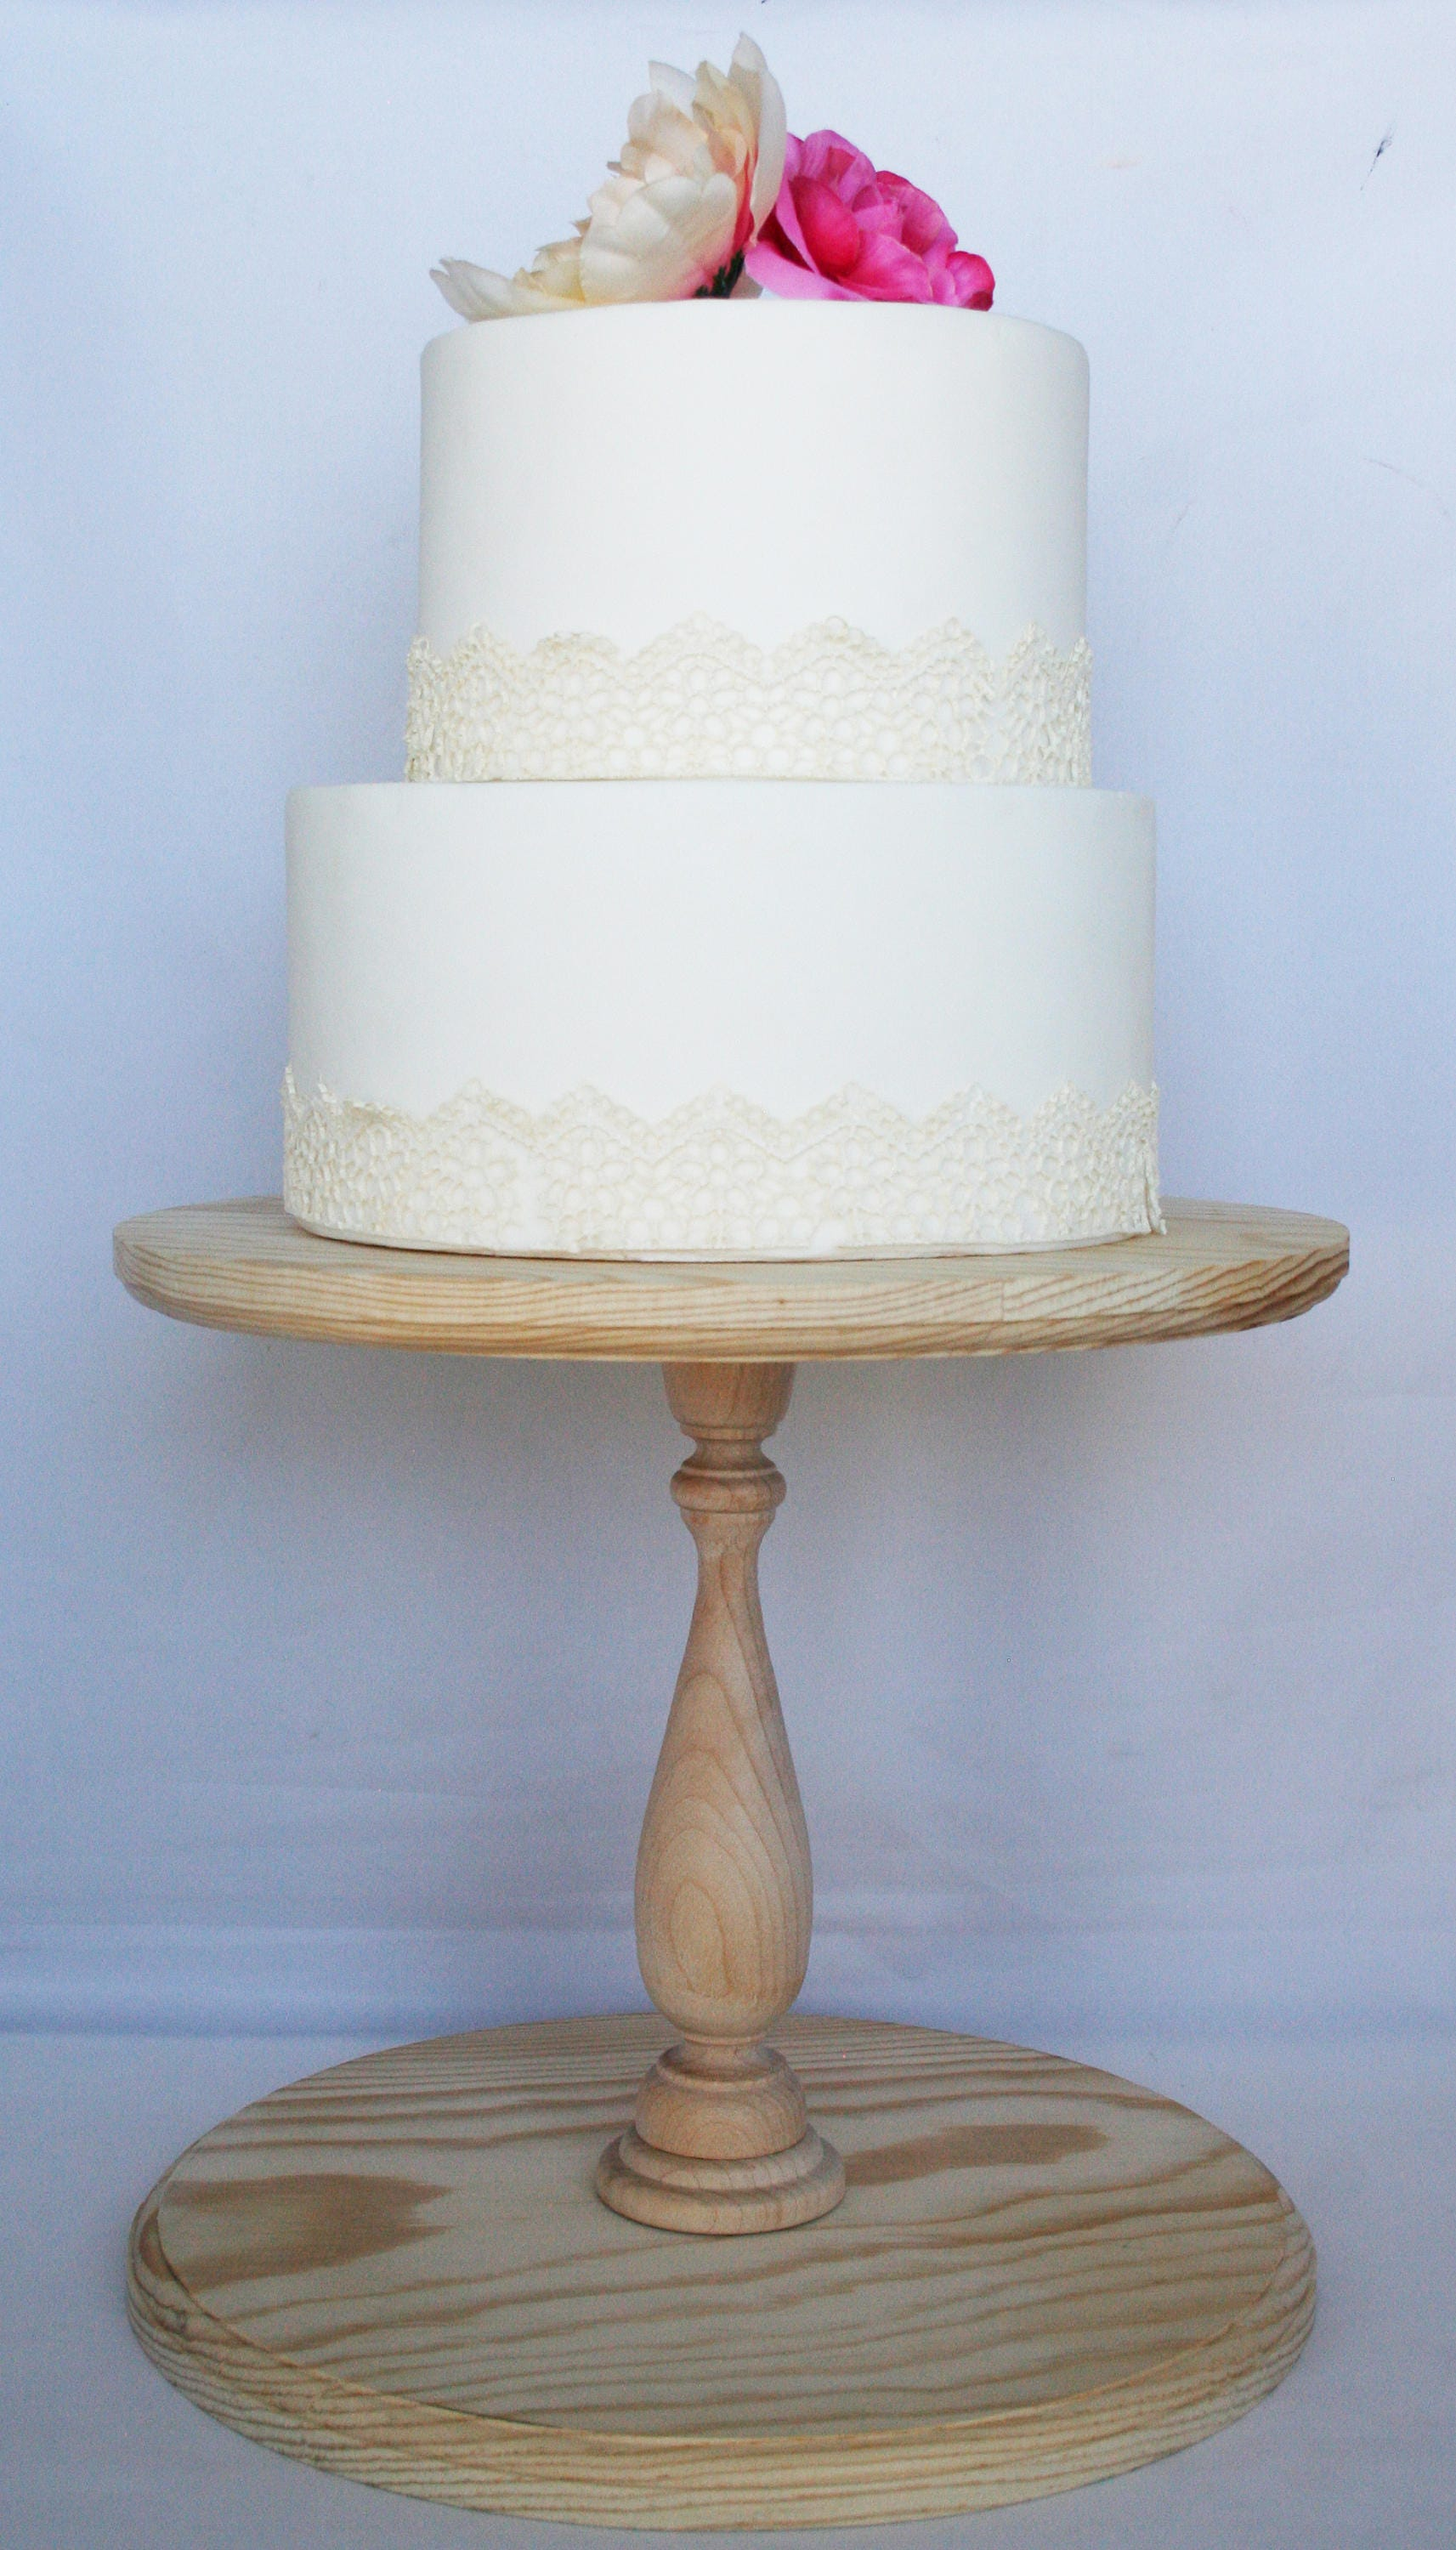 Uncategorized Diy Wooden Cake Stand unfinished wooden cake stands varioius sizes diy stand wedding stand